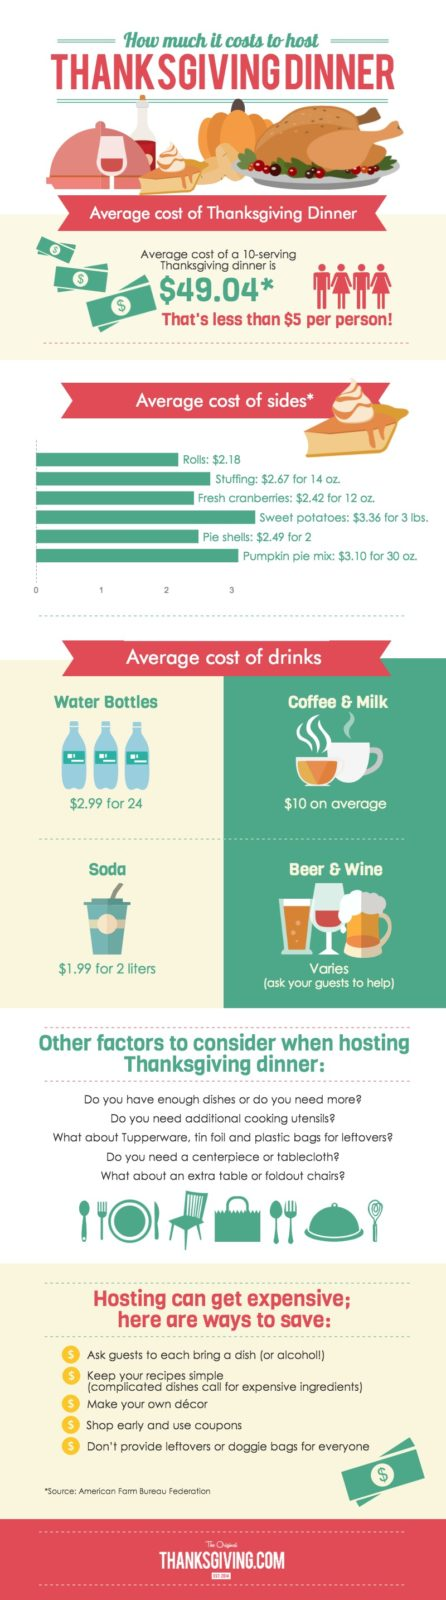 Infographic The Cost of Thanksgiving Dinner from Thanksgiving.com